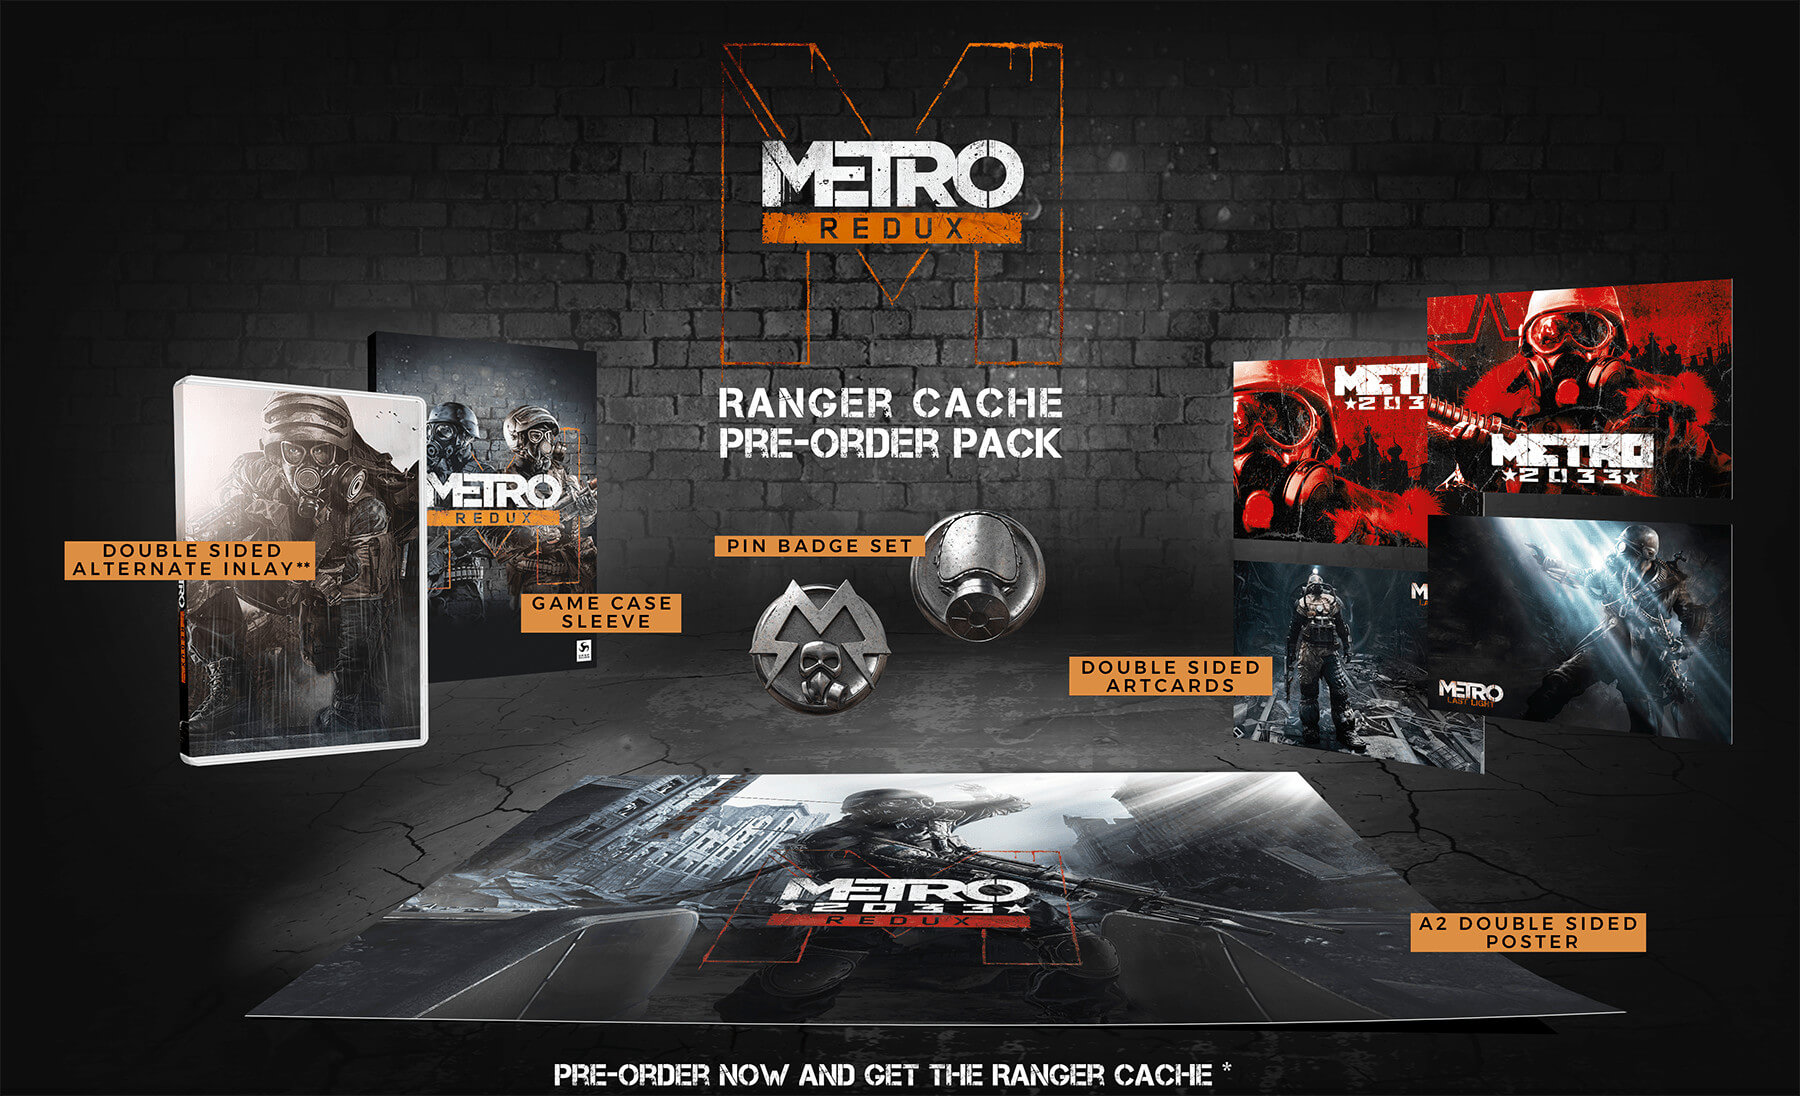 Metro Redux is coming to the Nintendo Switch next month